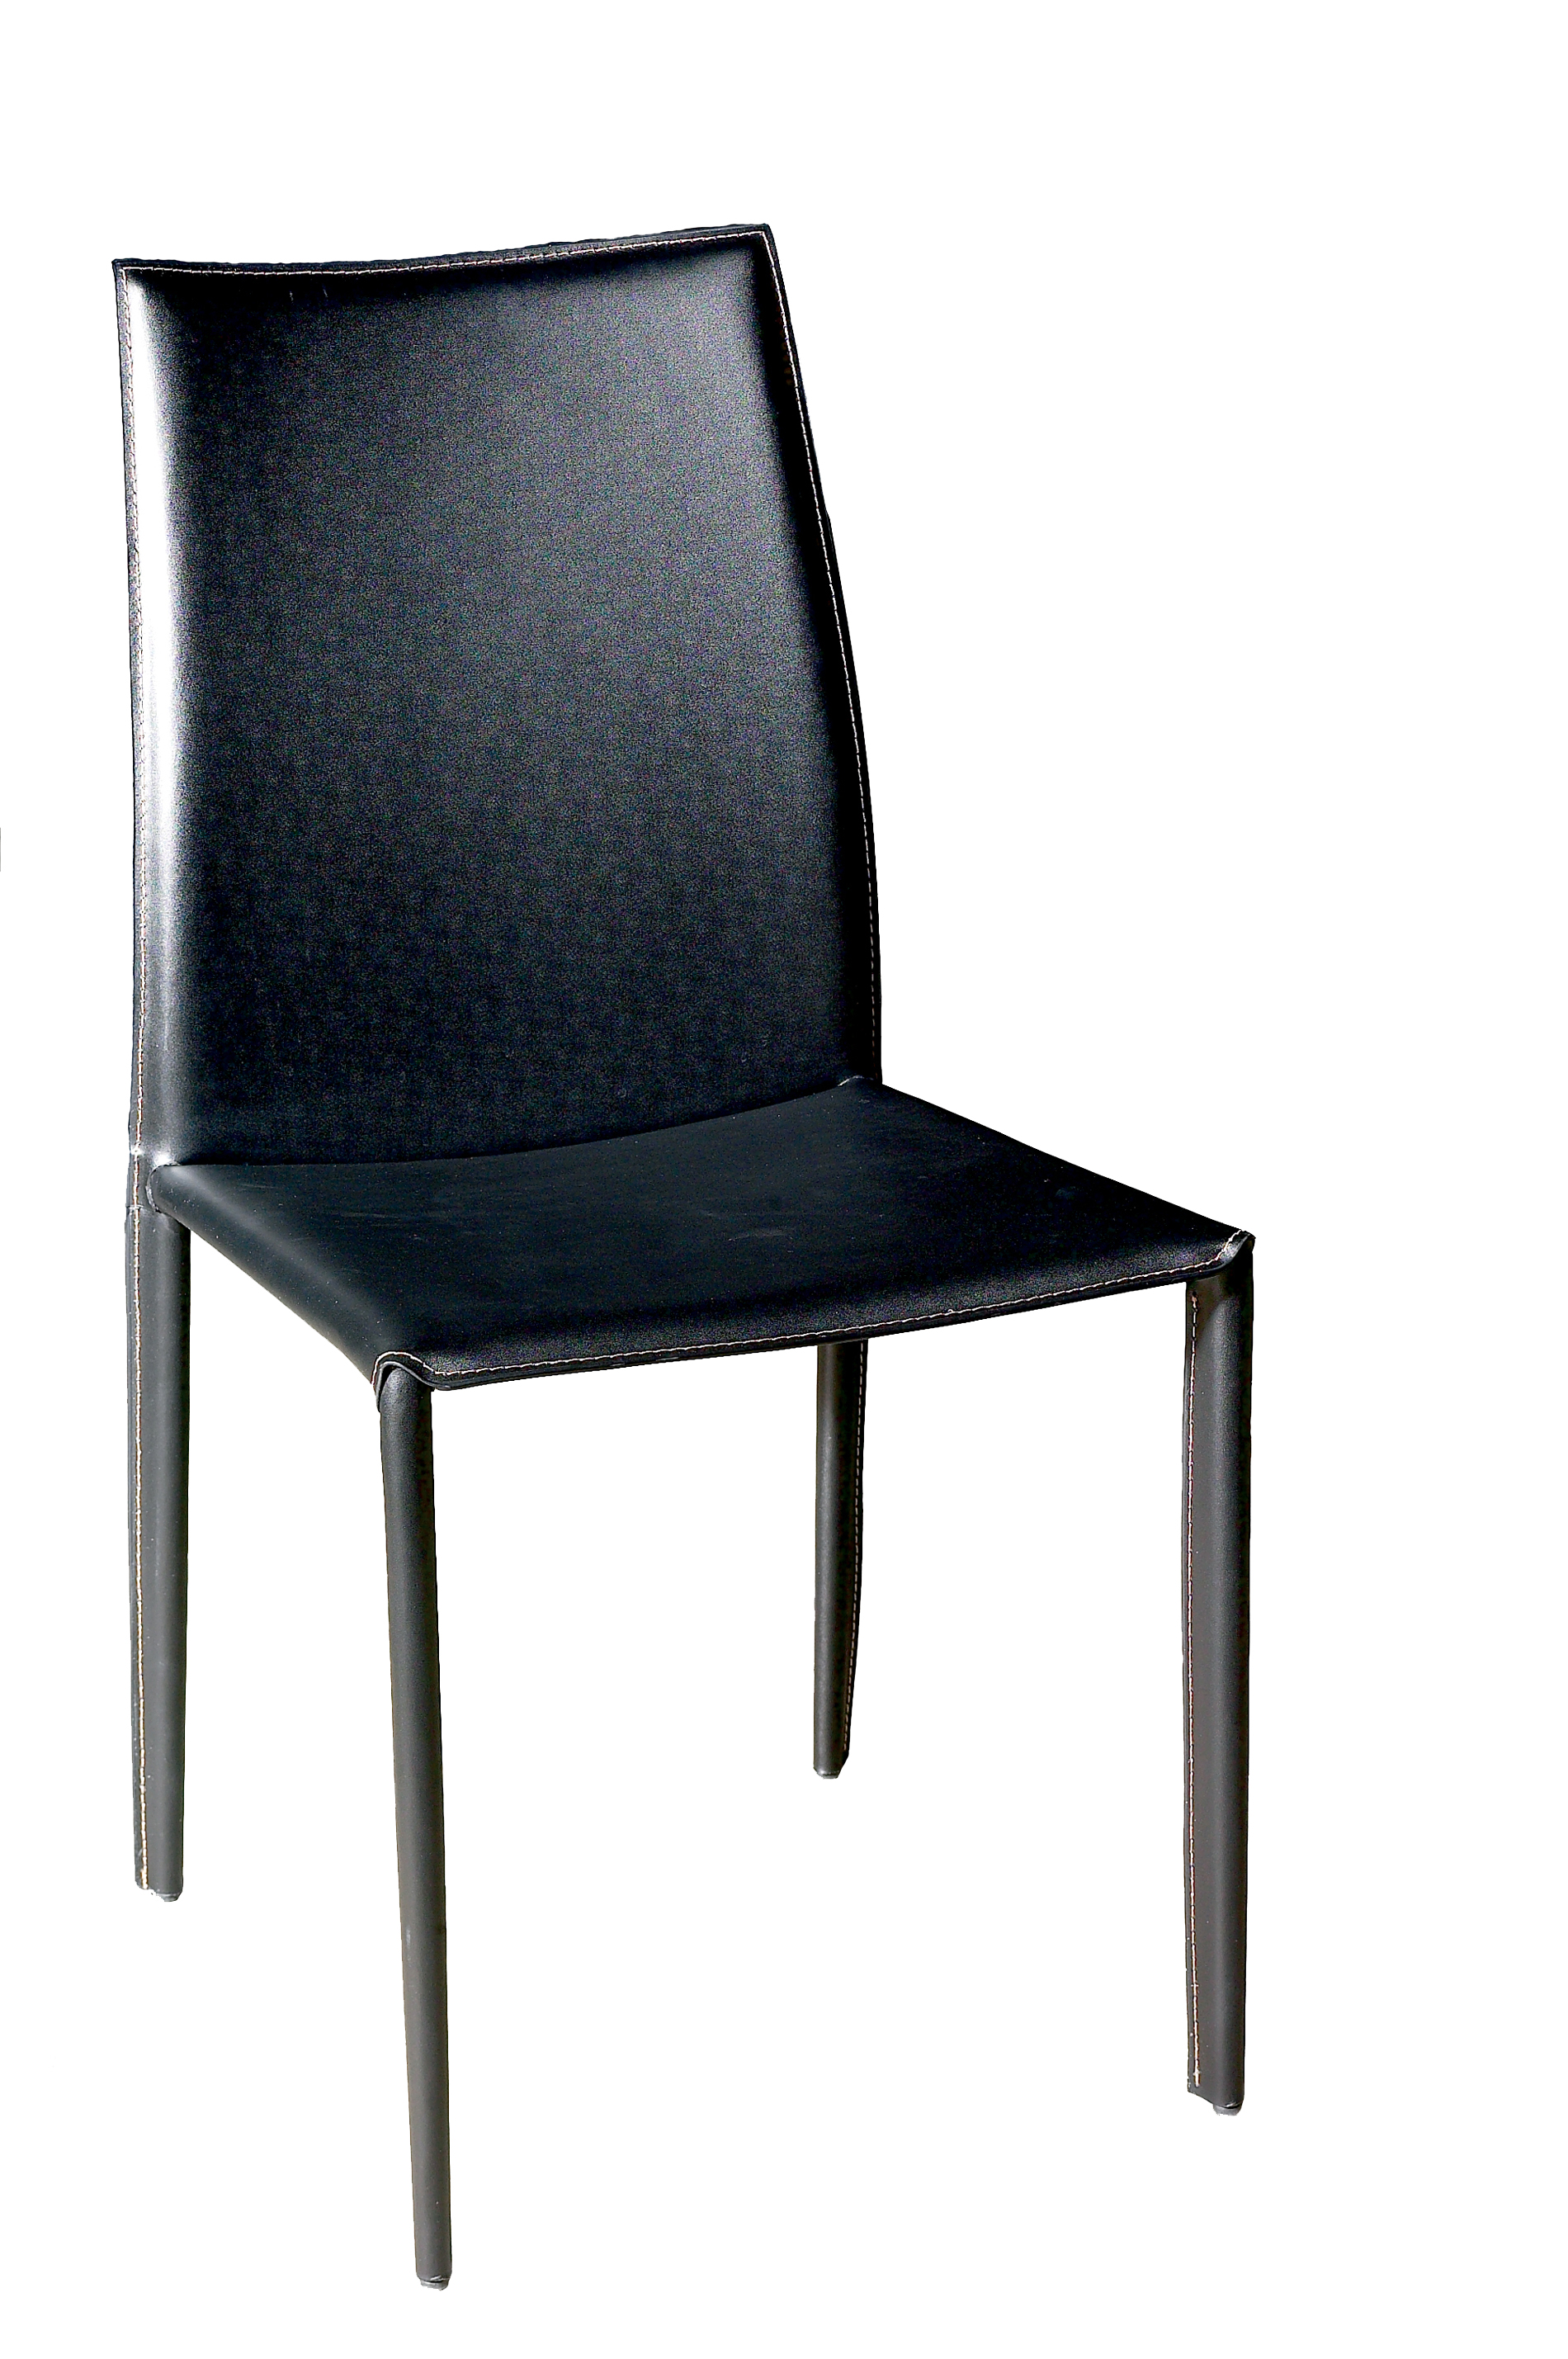 Black Leather Dining Room Chairs Dining Tables Leather Chairs Chair Pads And Cushions